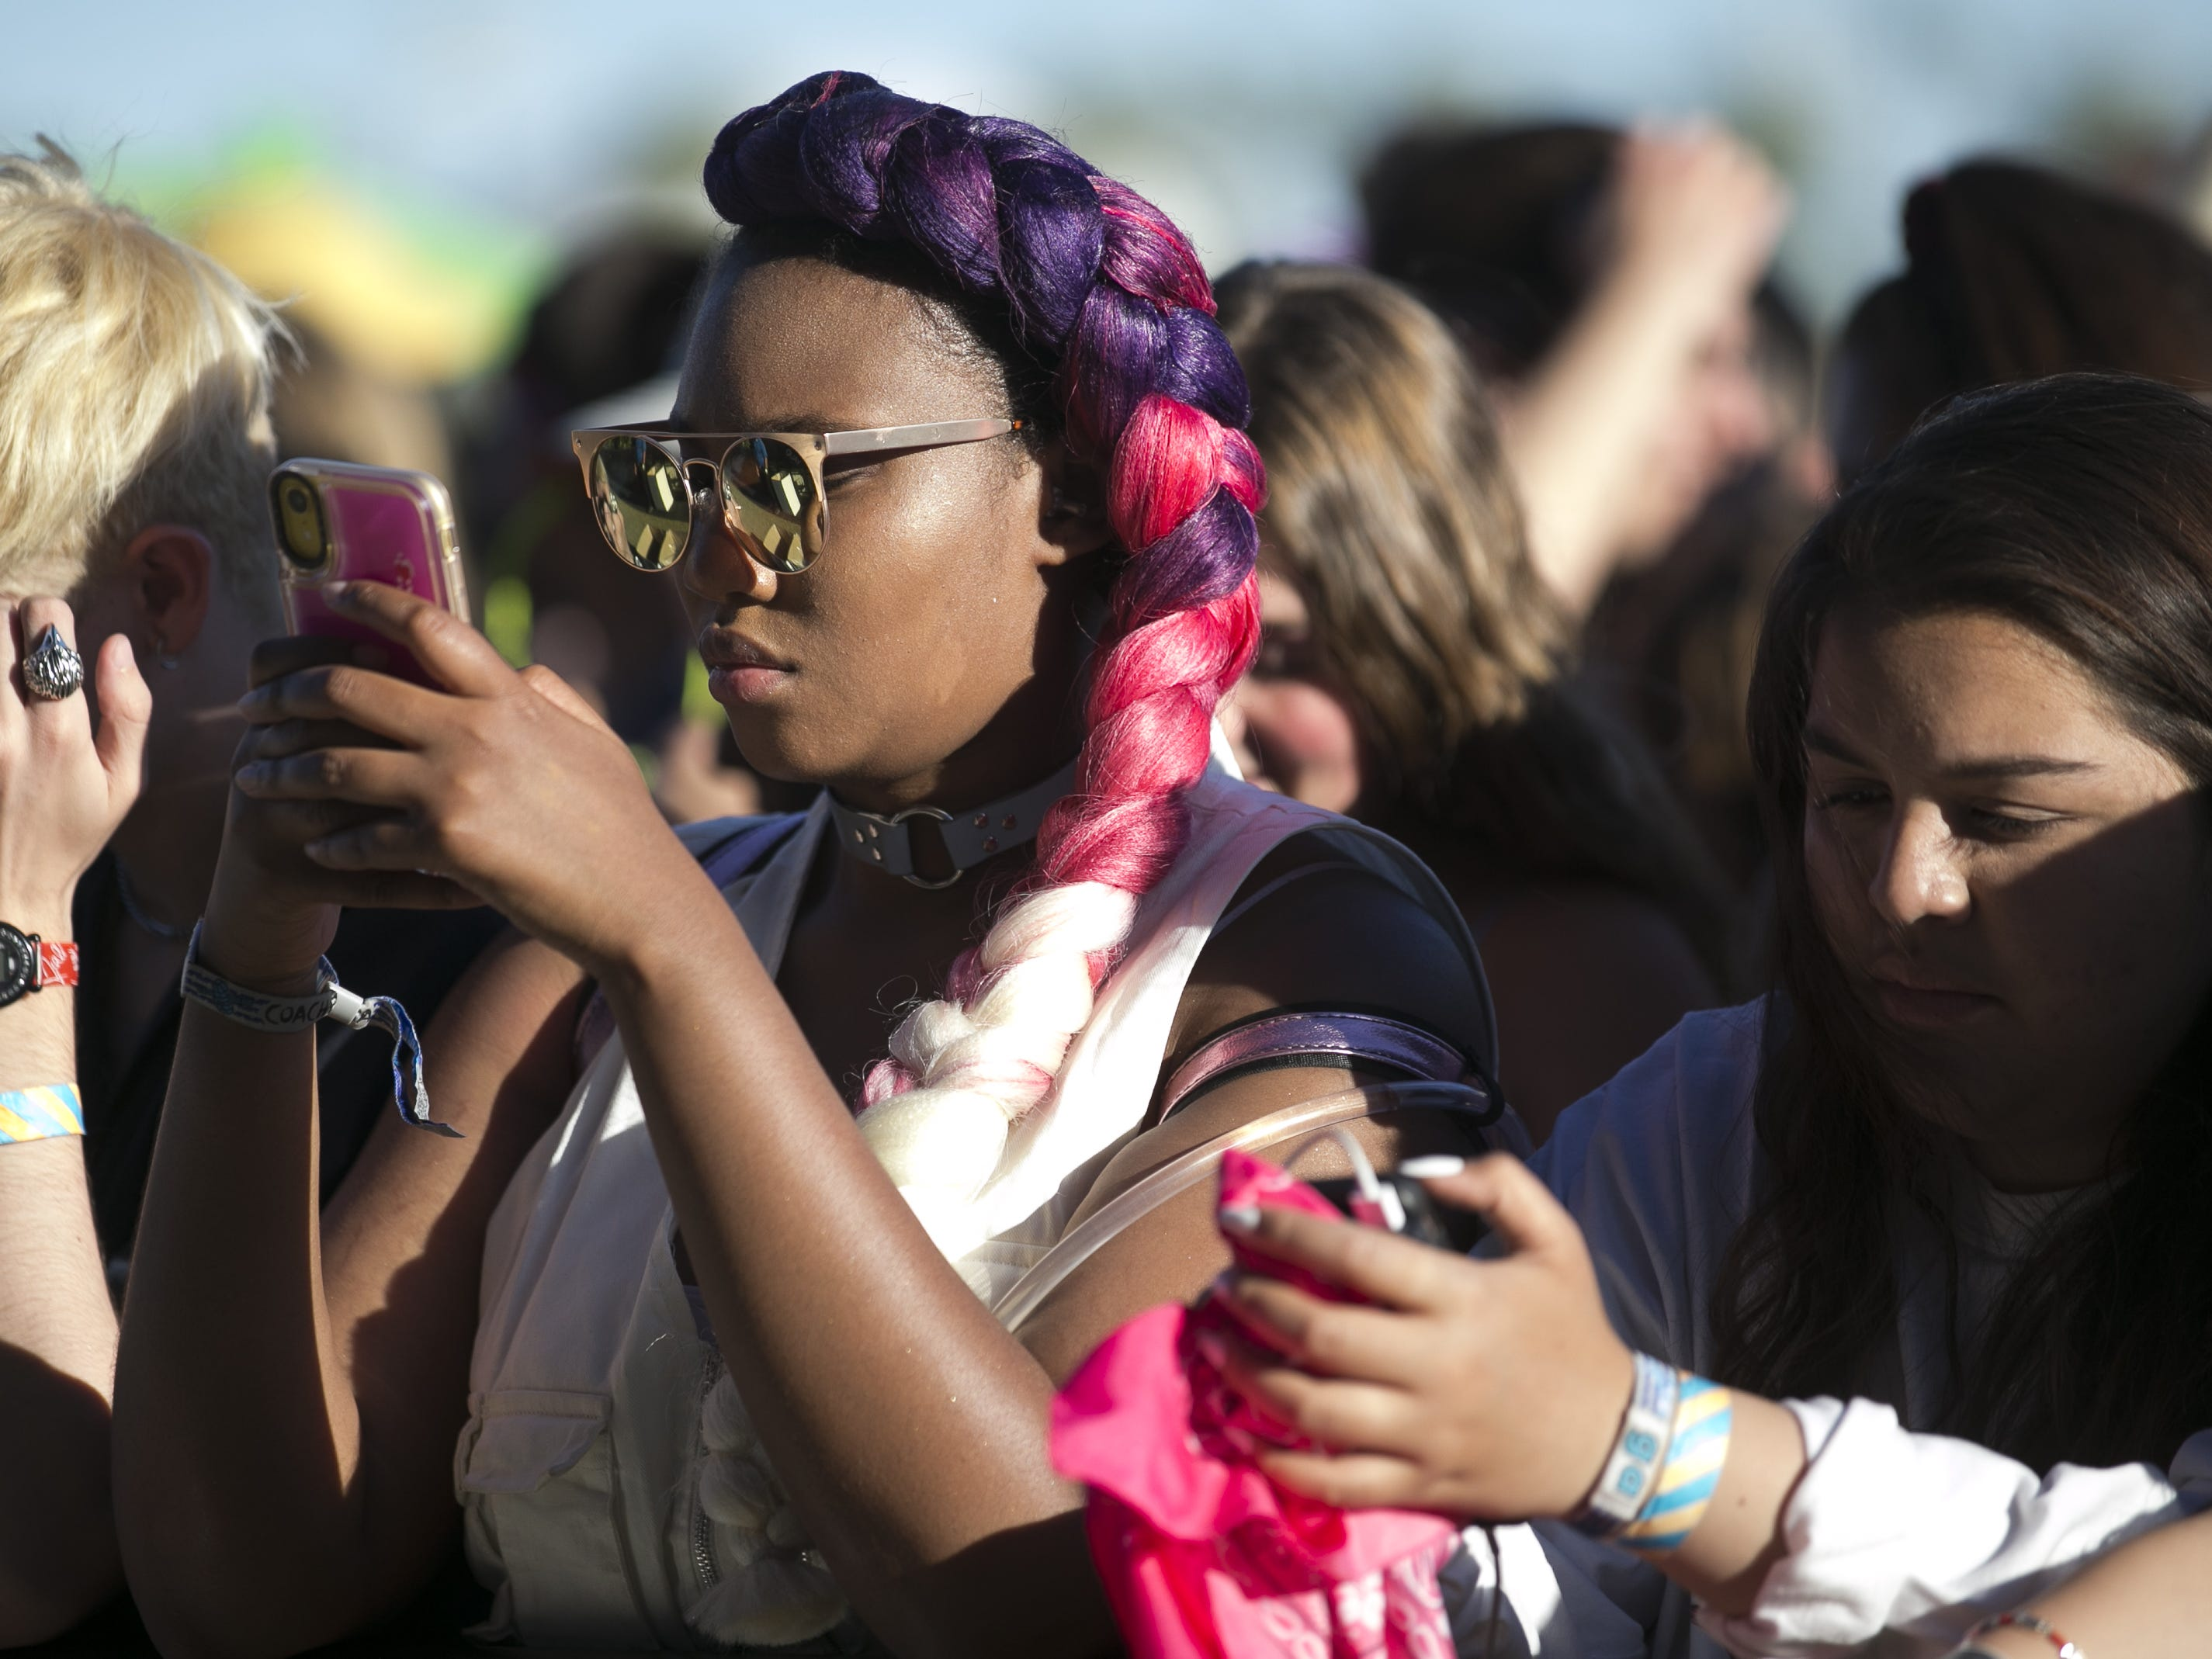 Festival-goers wait at the main stage in between sets at the Coachella Valley Music and Arts Festival in Indio, Calif. on April 12, 2019.